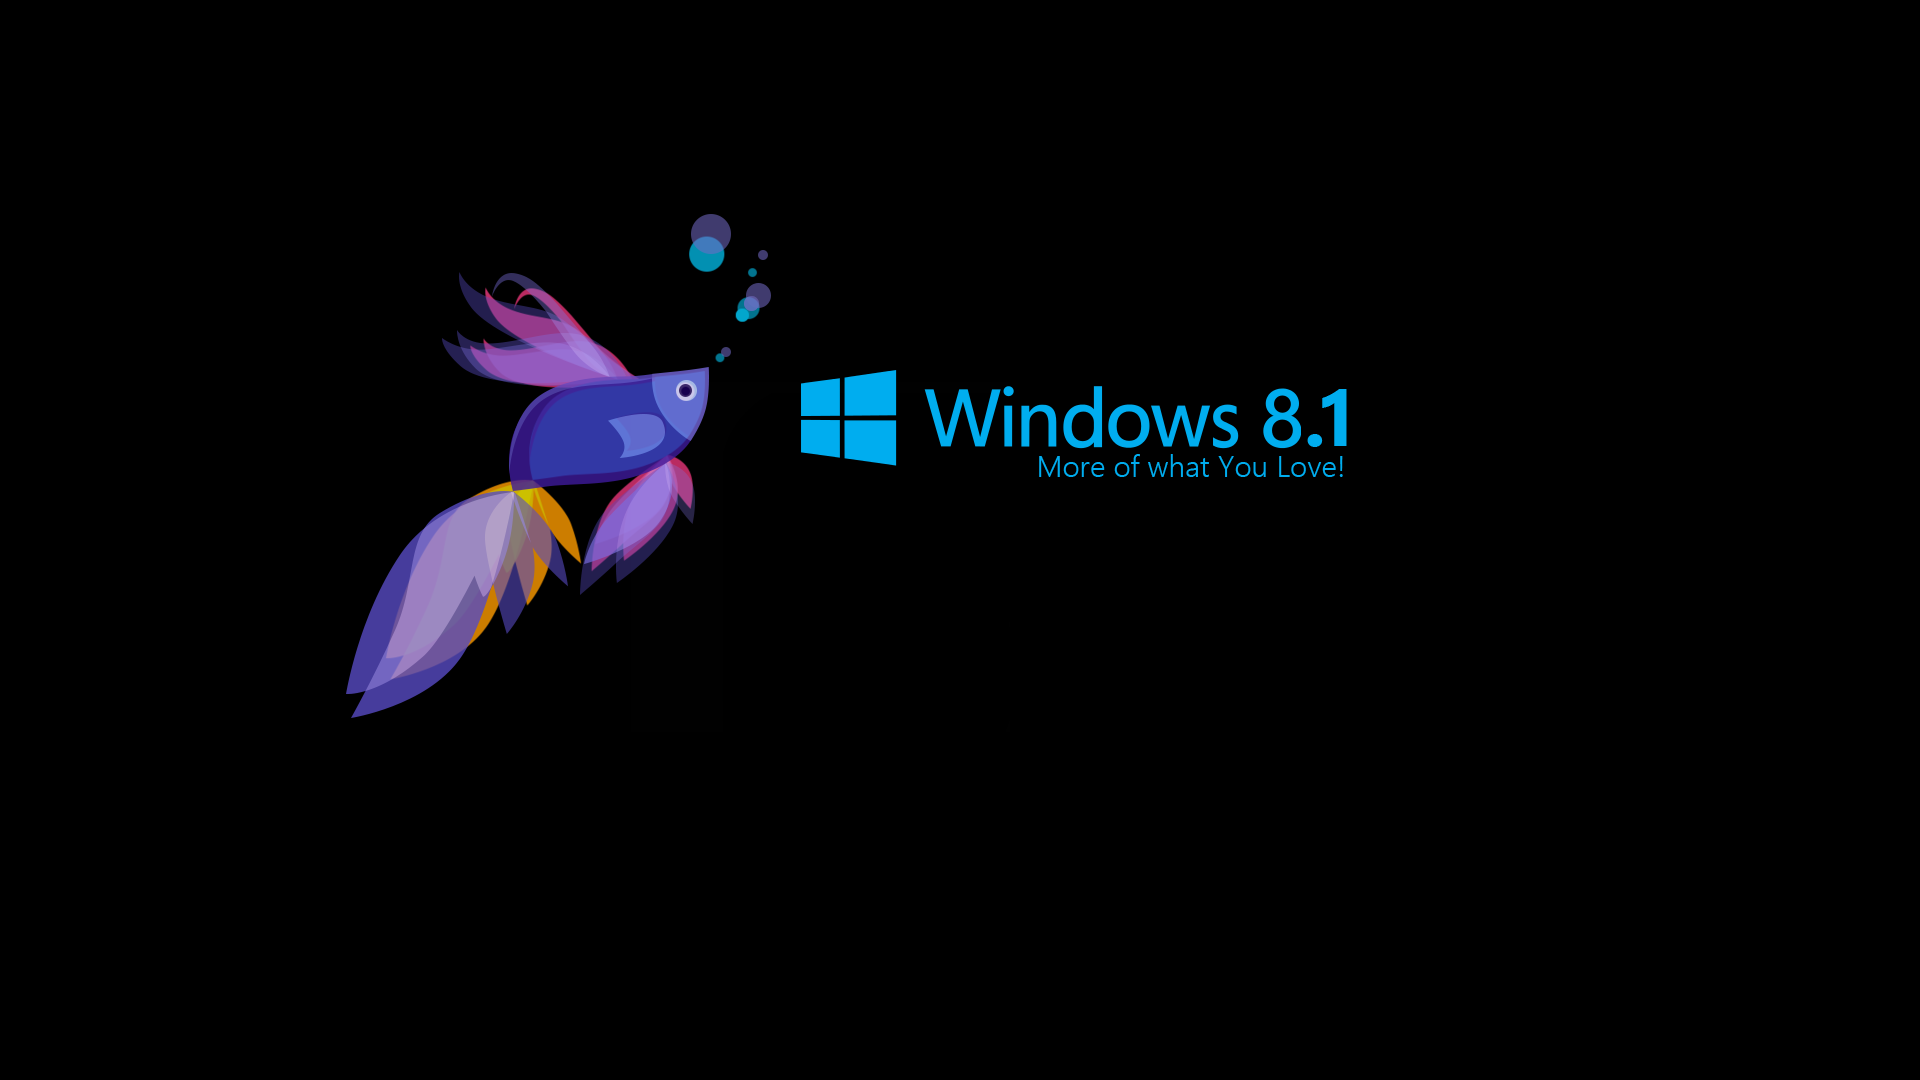 DigitalTrends Windows 81 Preview Wallpaper 1920x1080